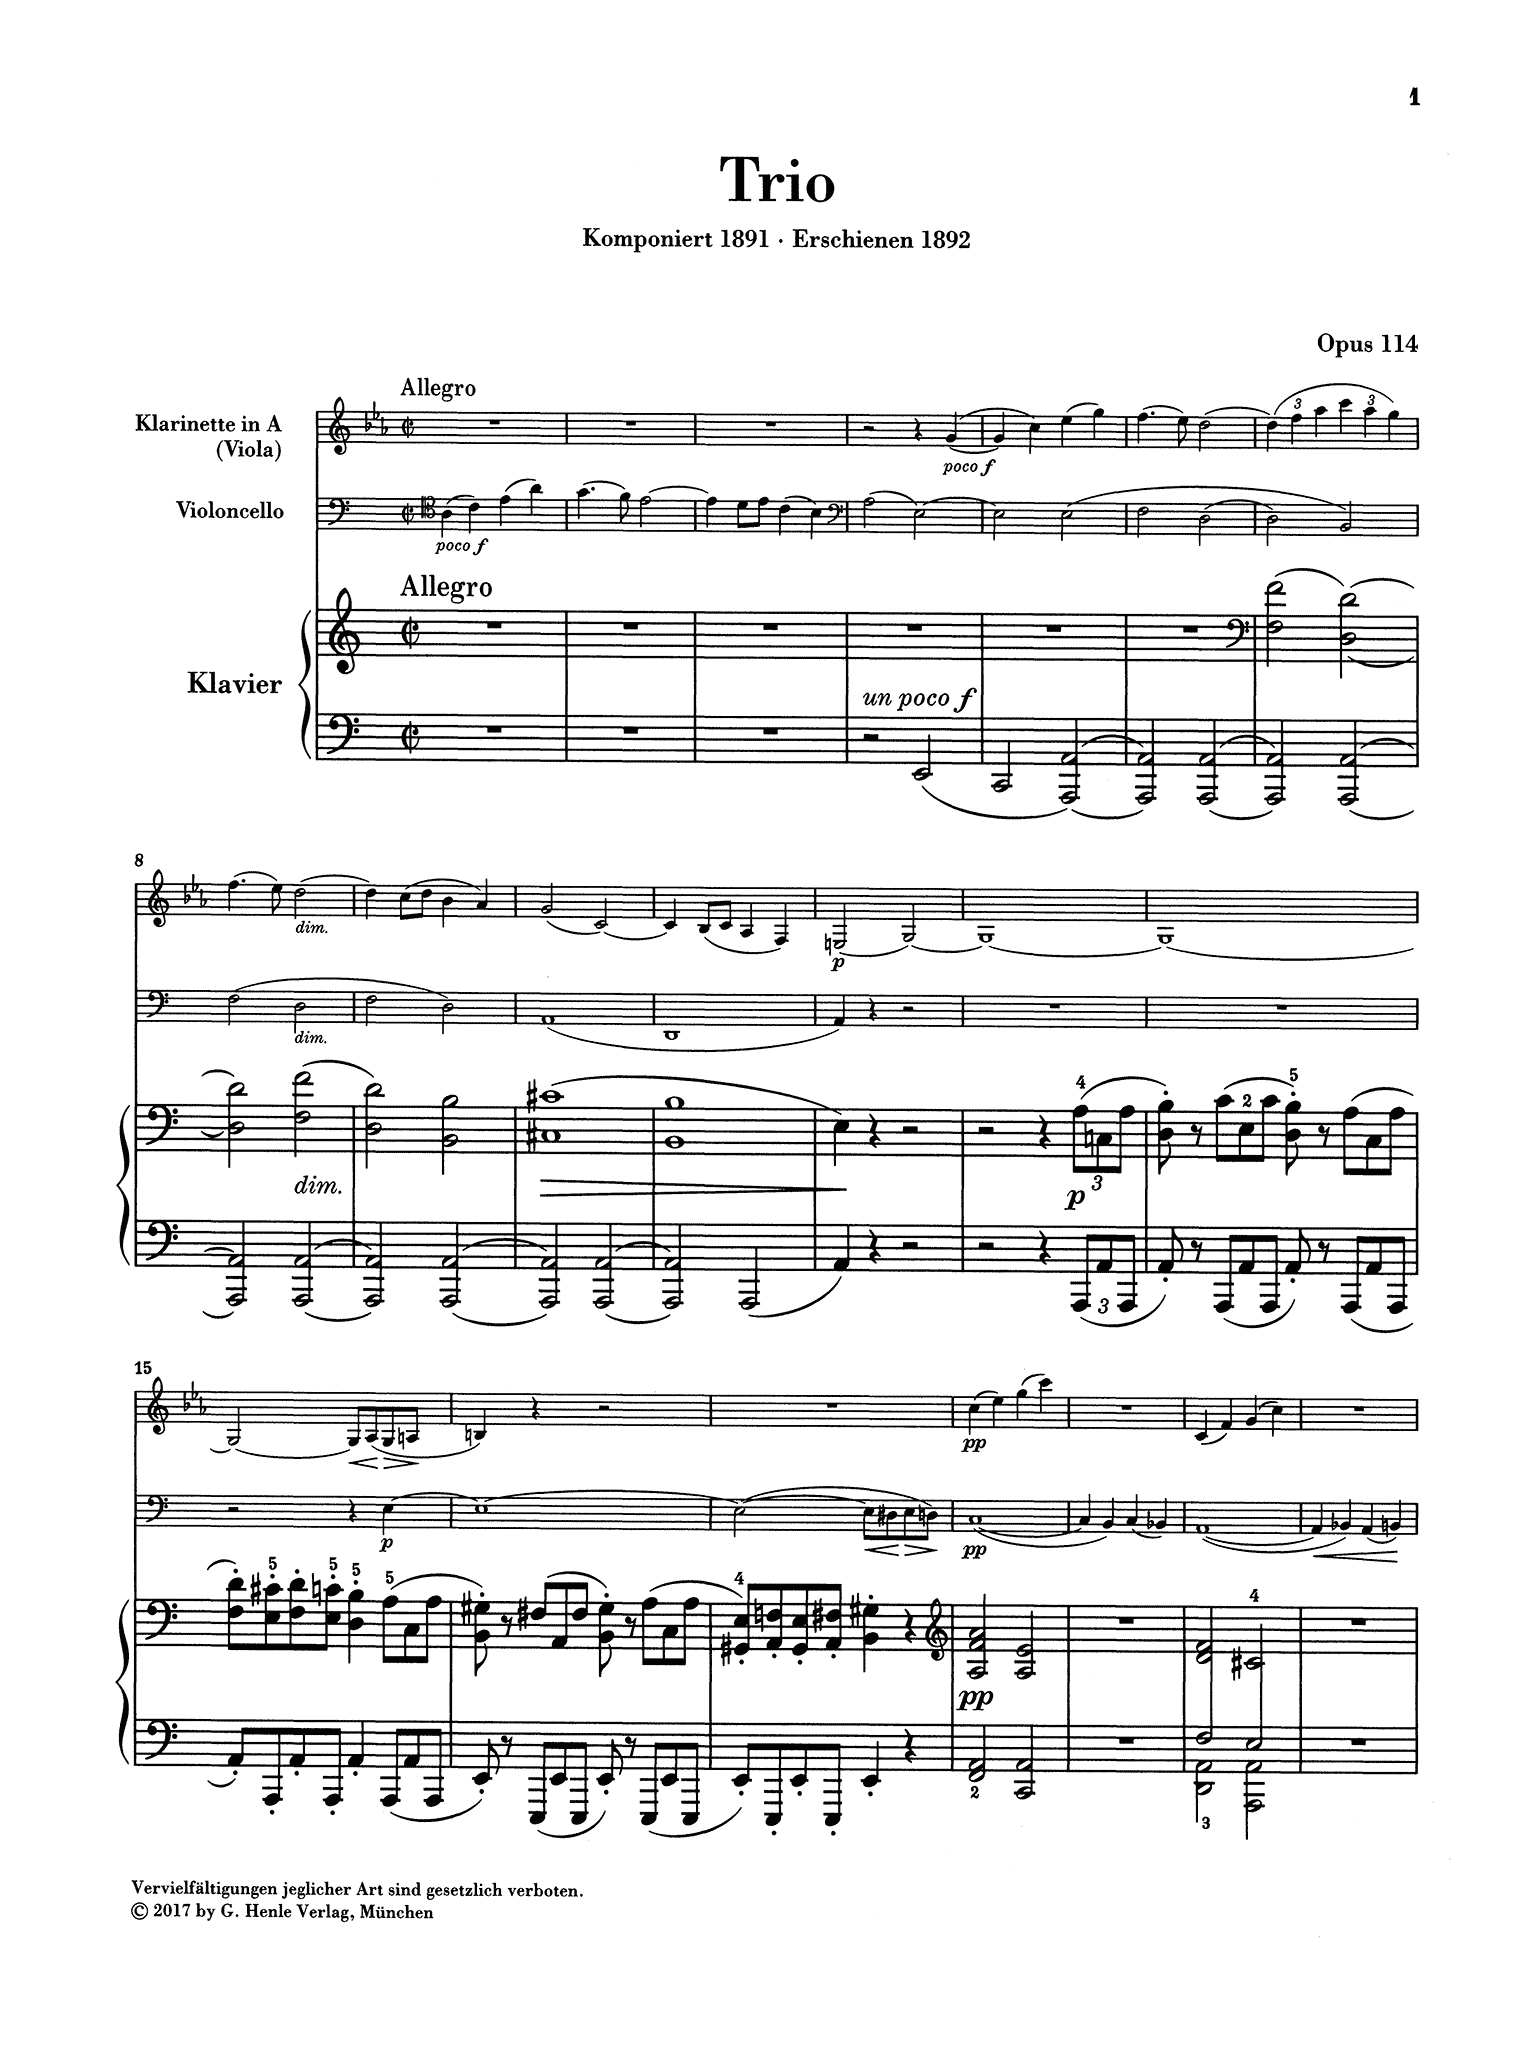 Brahms Clarinet Trio in A Minor, Op. 114 - Movement 1